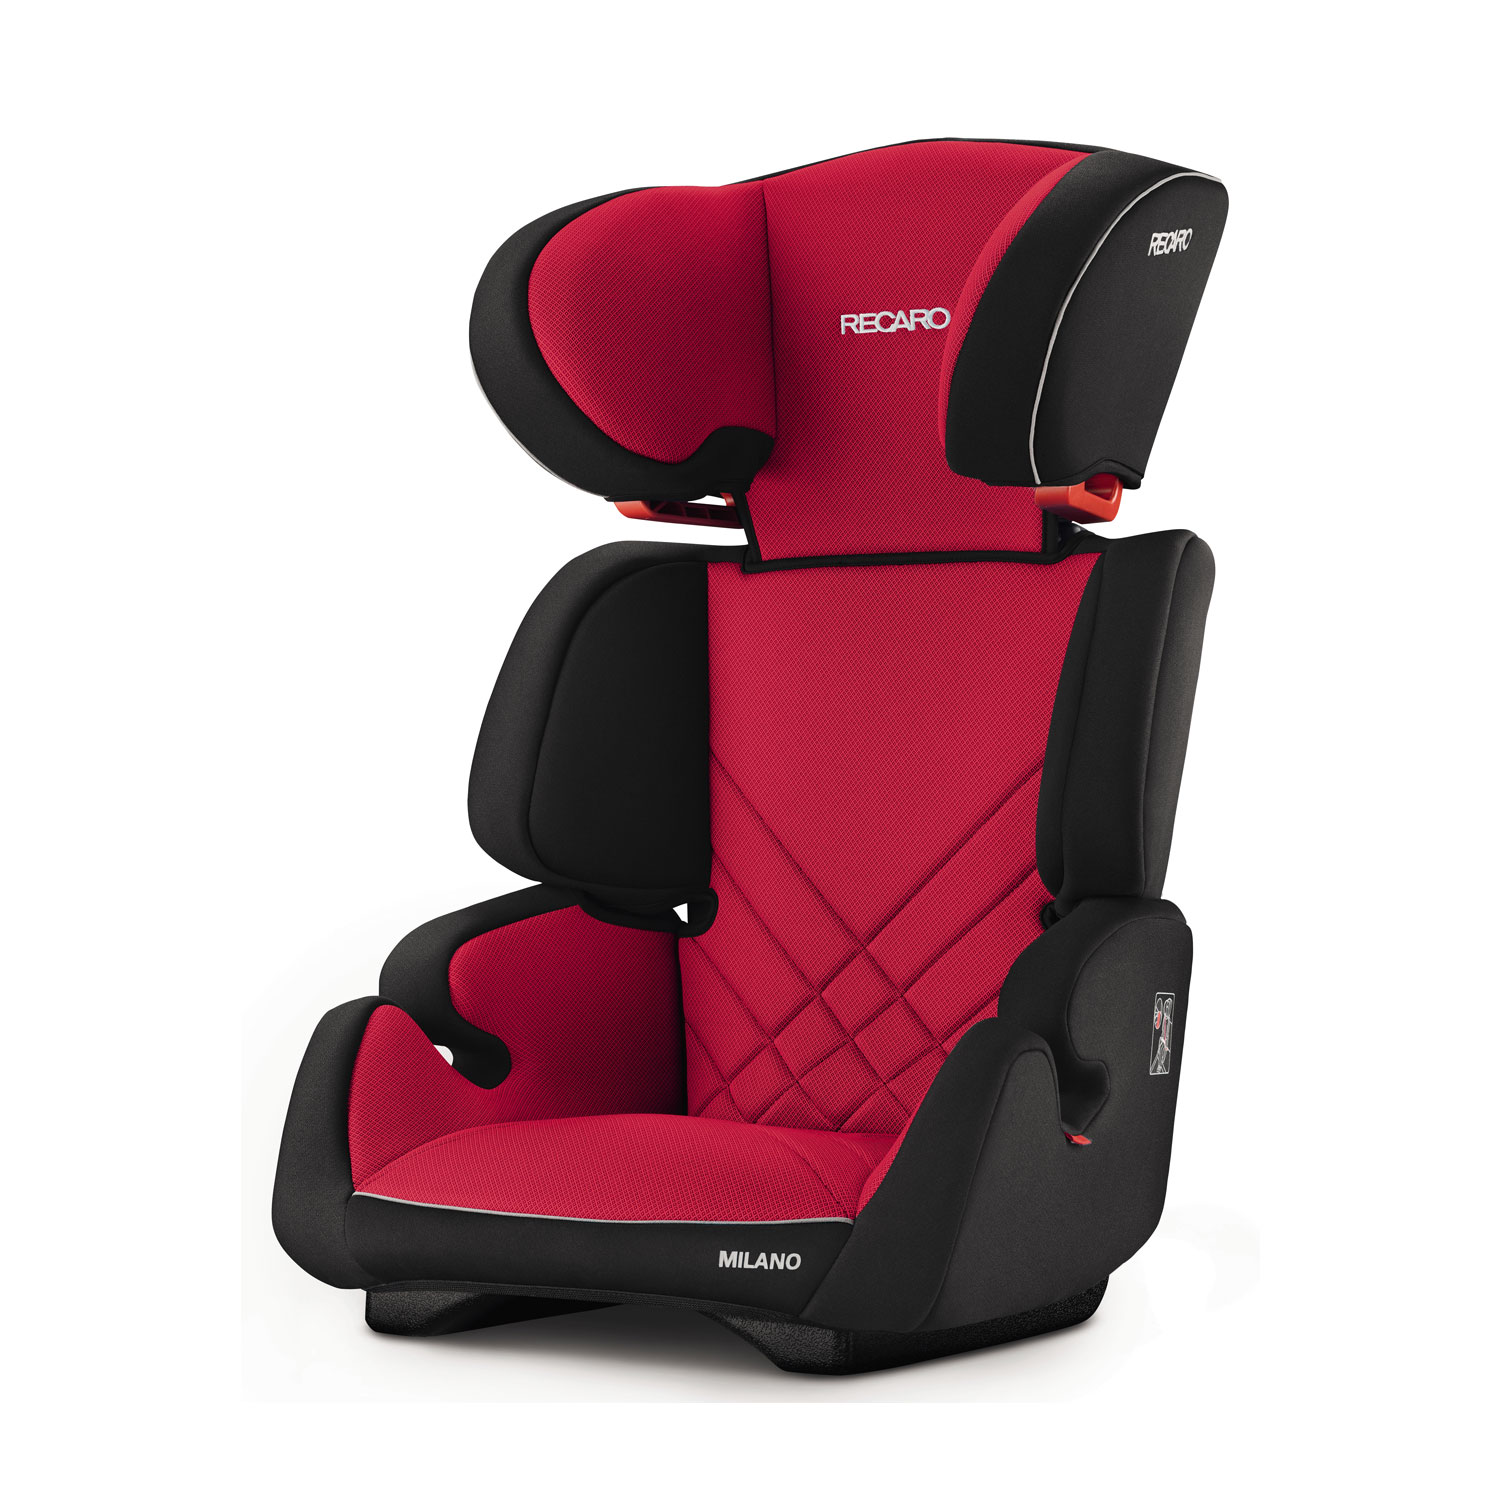 recaro germany milano racing red child seat 15 36 kg 33. Black Bedroom Furniture Sets. Home Design Ideas